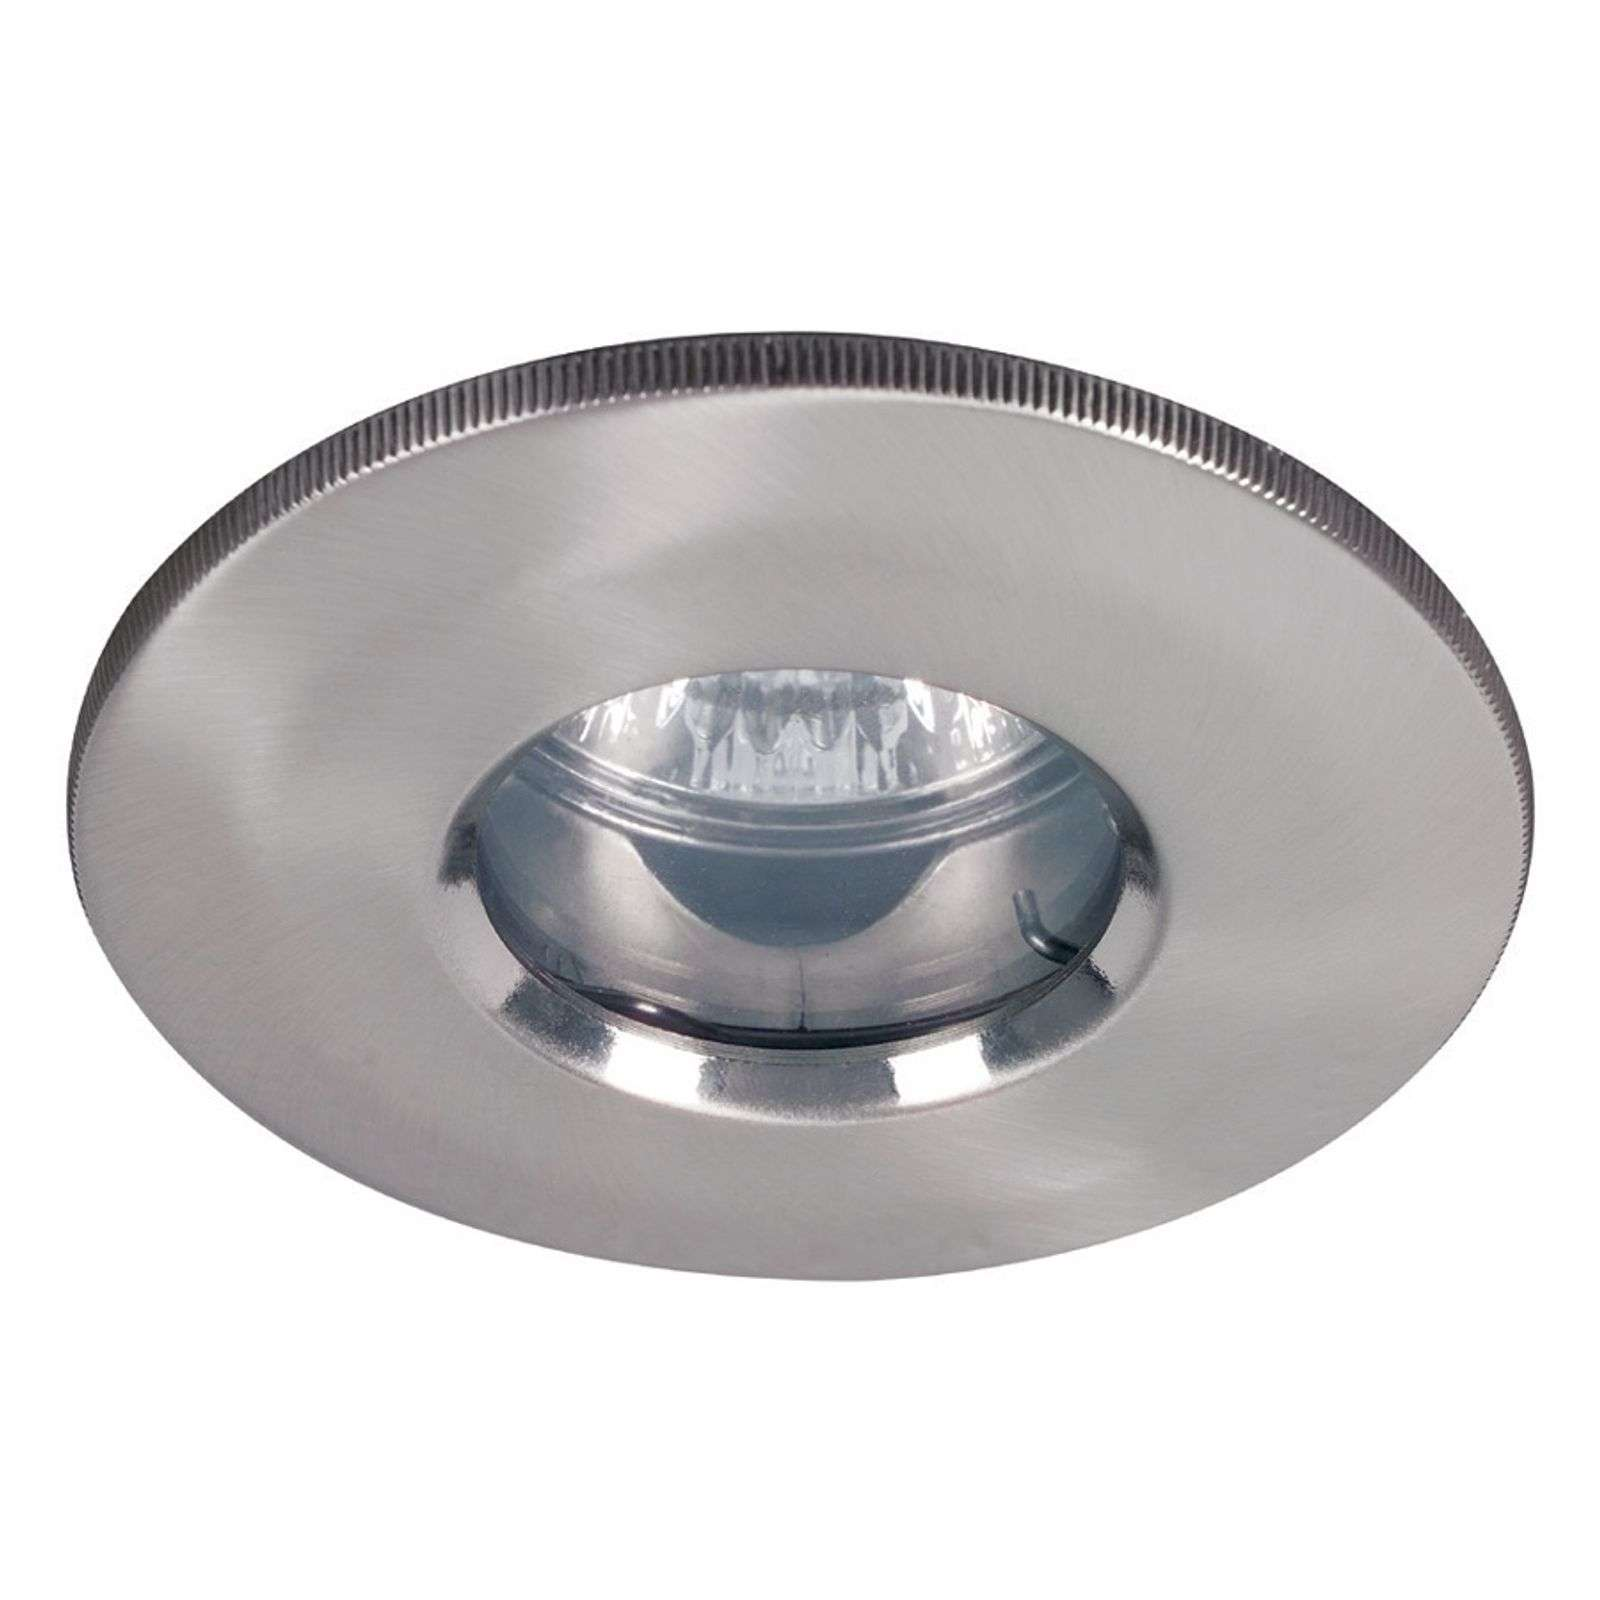 Downlight rond Kimi IP 65 1 x 35 W acier